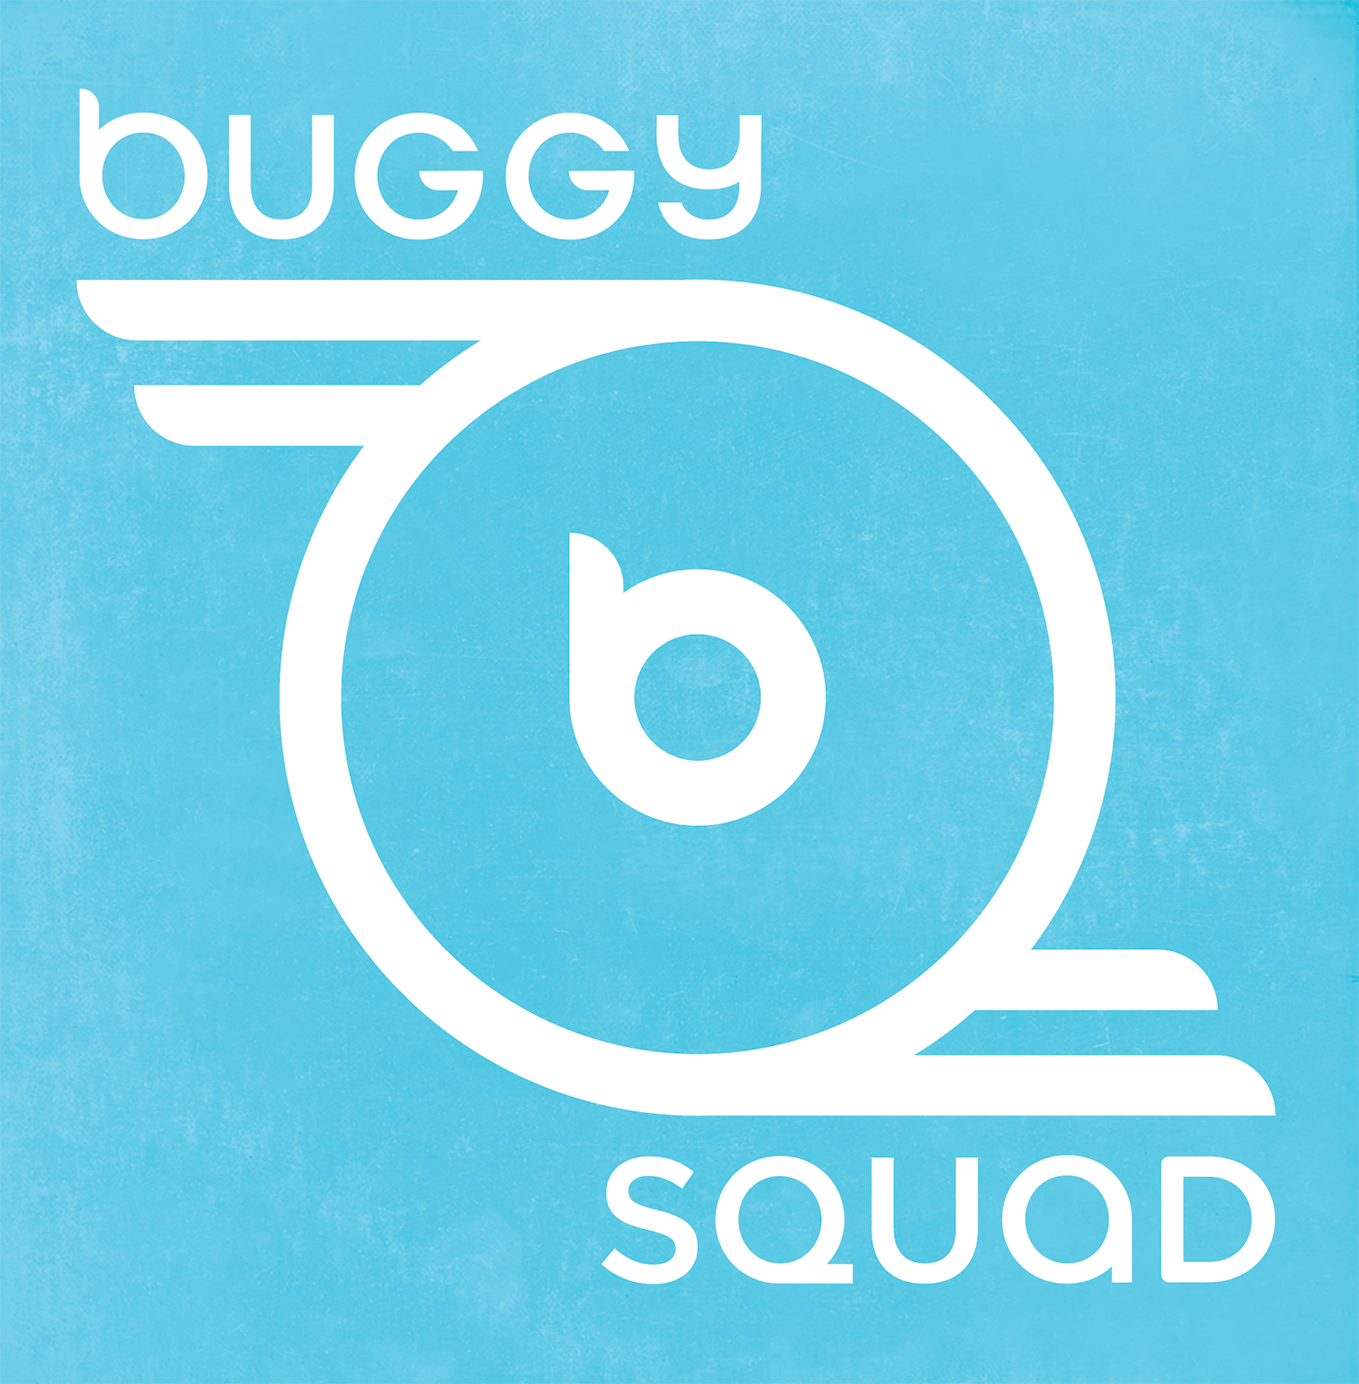 Our running club based in Maidenhead led by Sports Physio Ros Cooke and our founder, Wendy Rumble.  Free 5k weekly run's, buggy hire available. Email Buggysquad@gmail.com for further details.